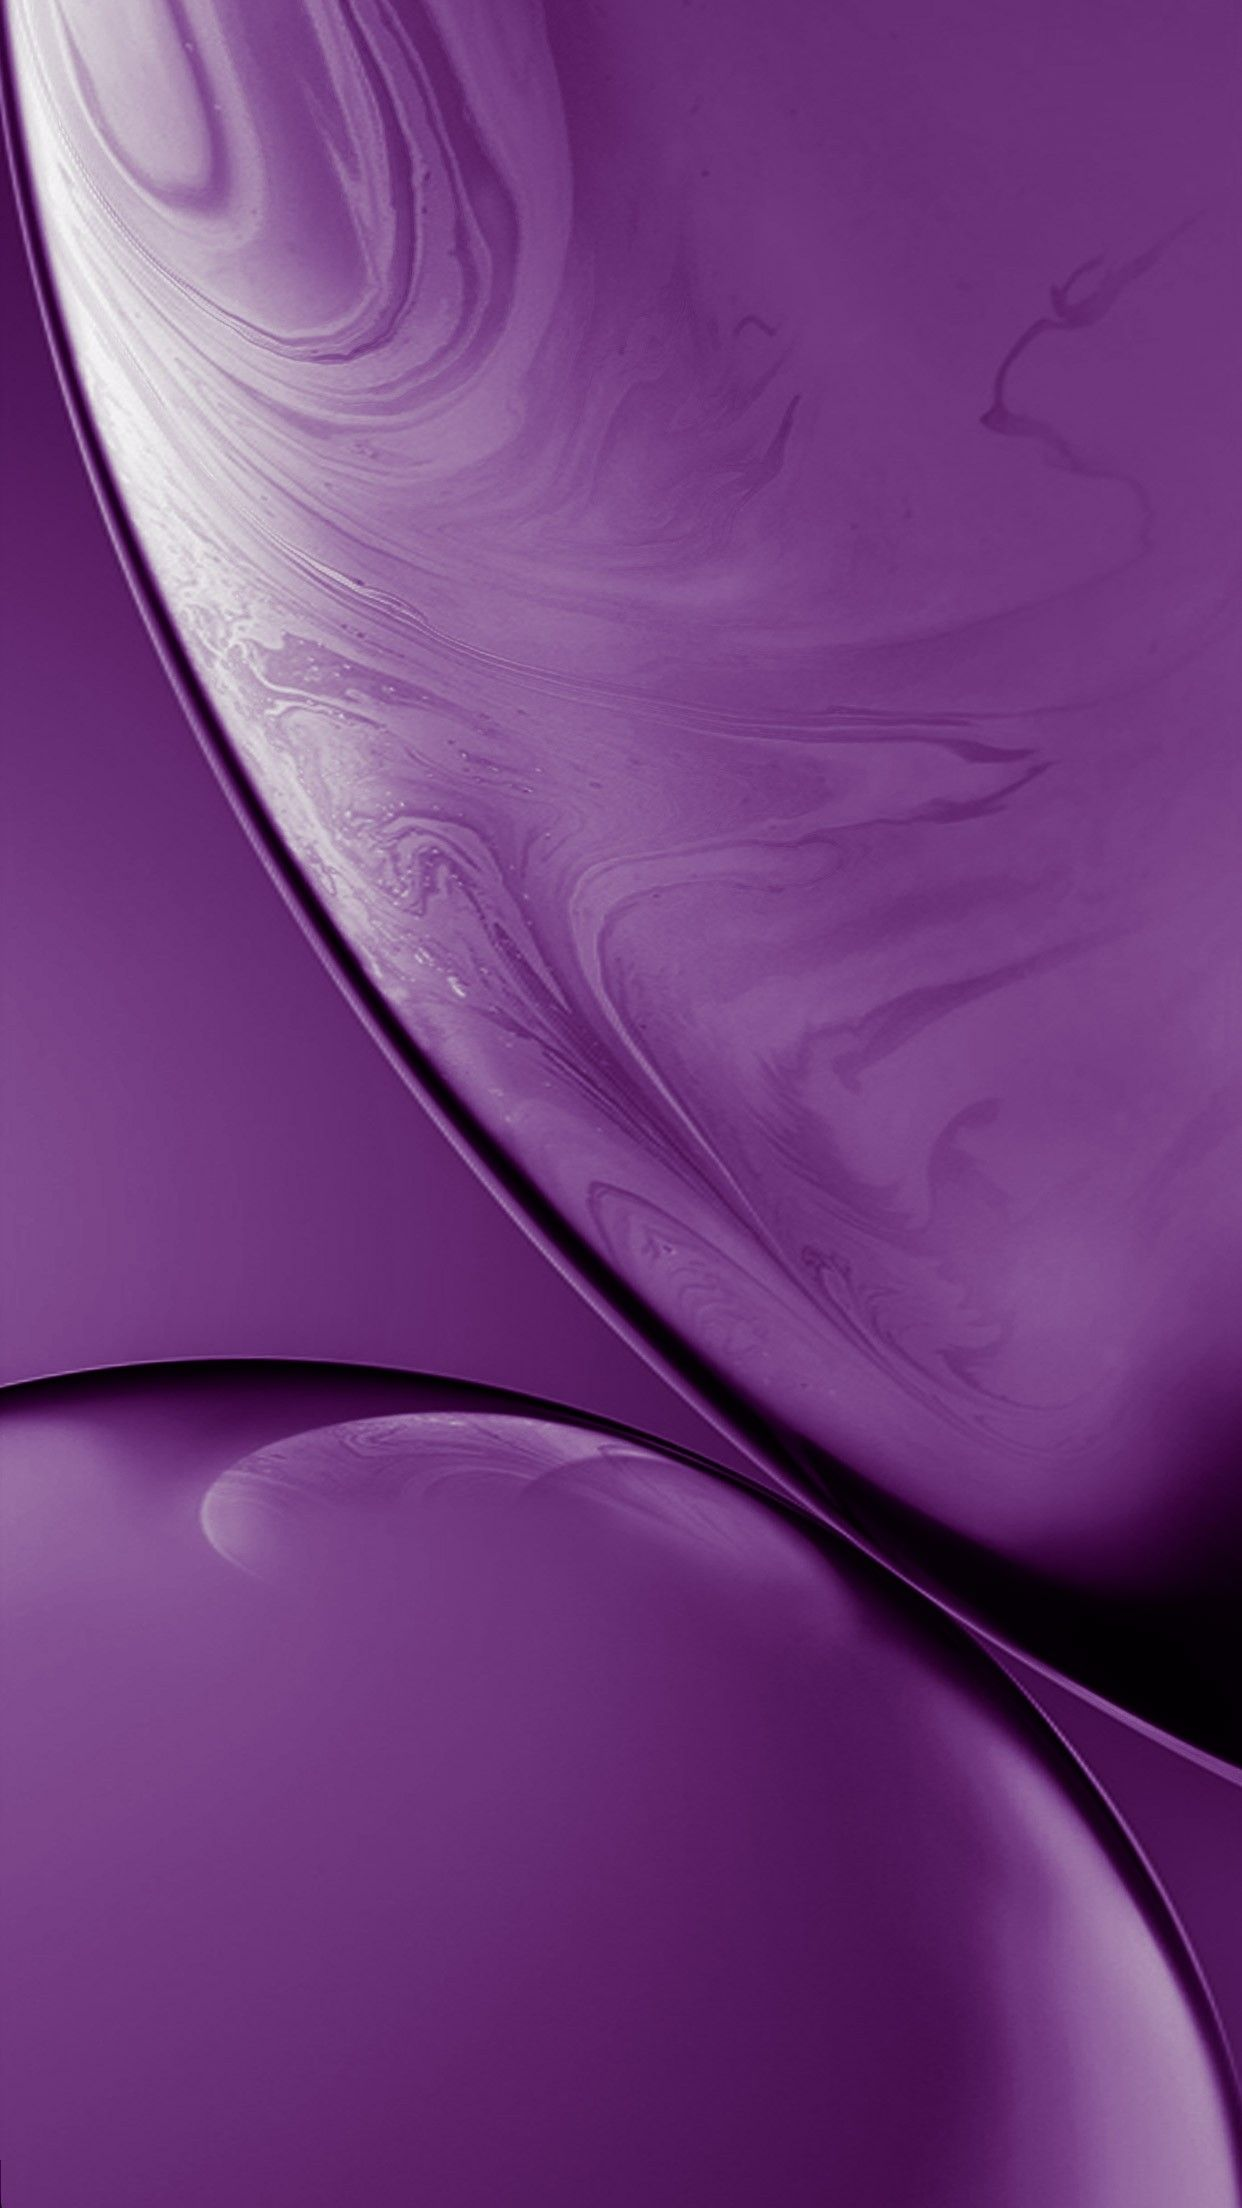 If Iphone Xr Available In Purple Purple Wallpaper Aesthetic Iphone Wallpaper Iphone Wallpaper